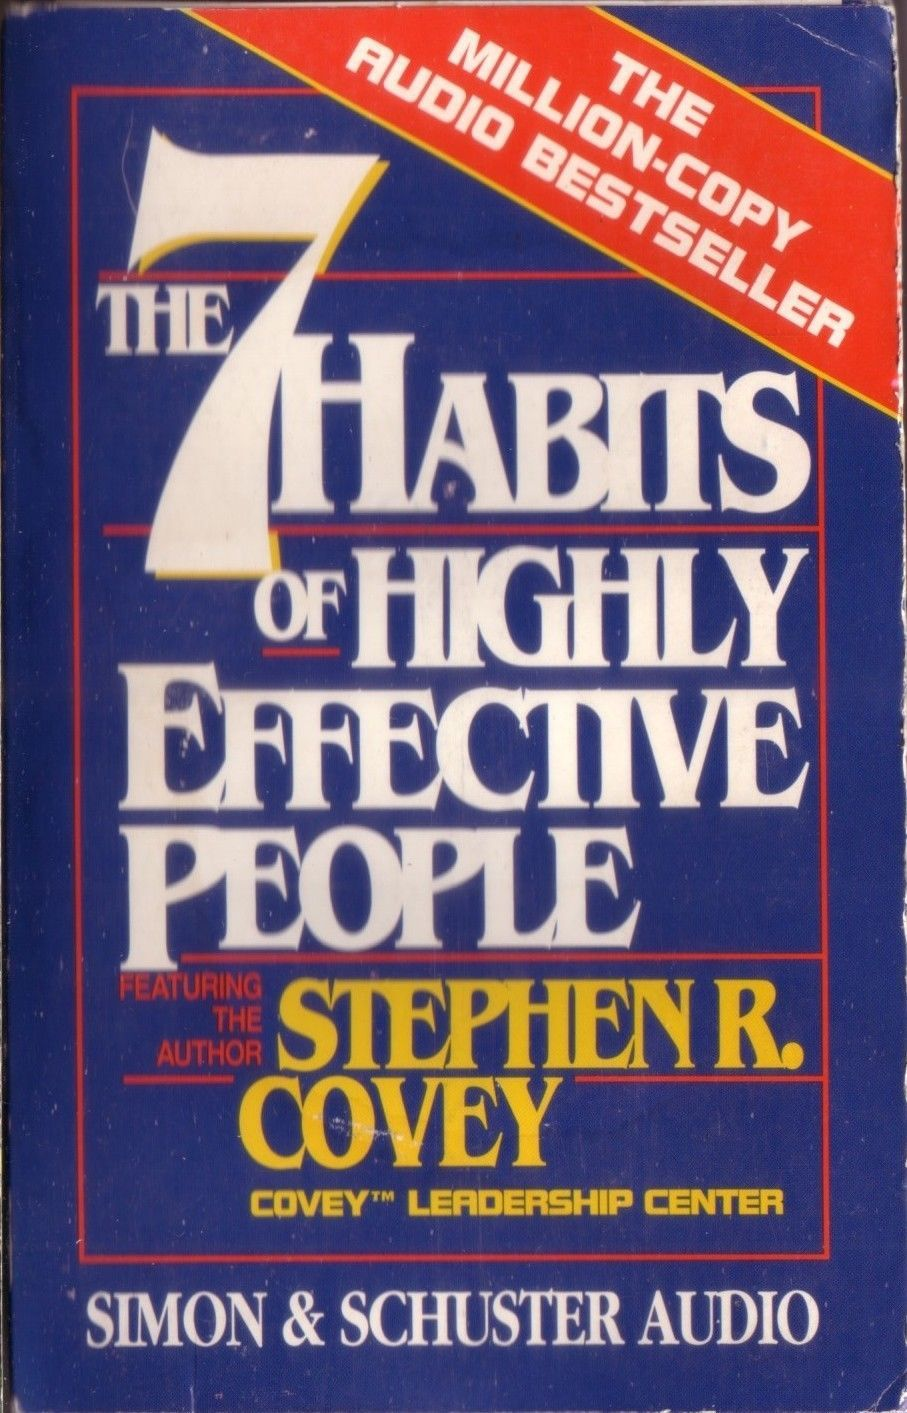 The 7 habits of highly effective people stephen covey 1989 cassette audiobook a